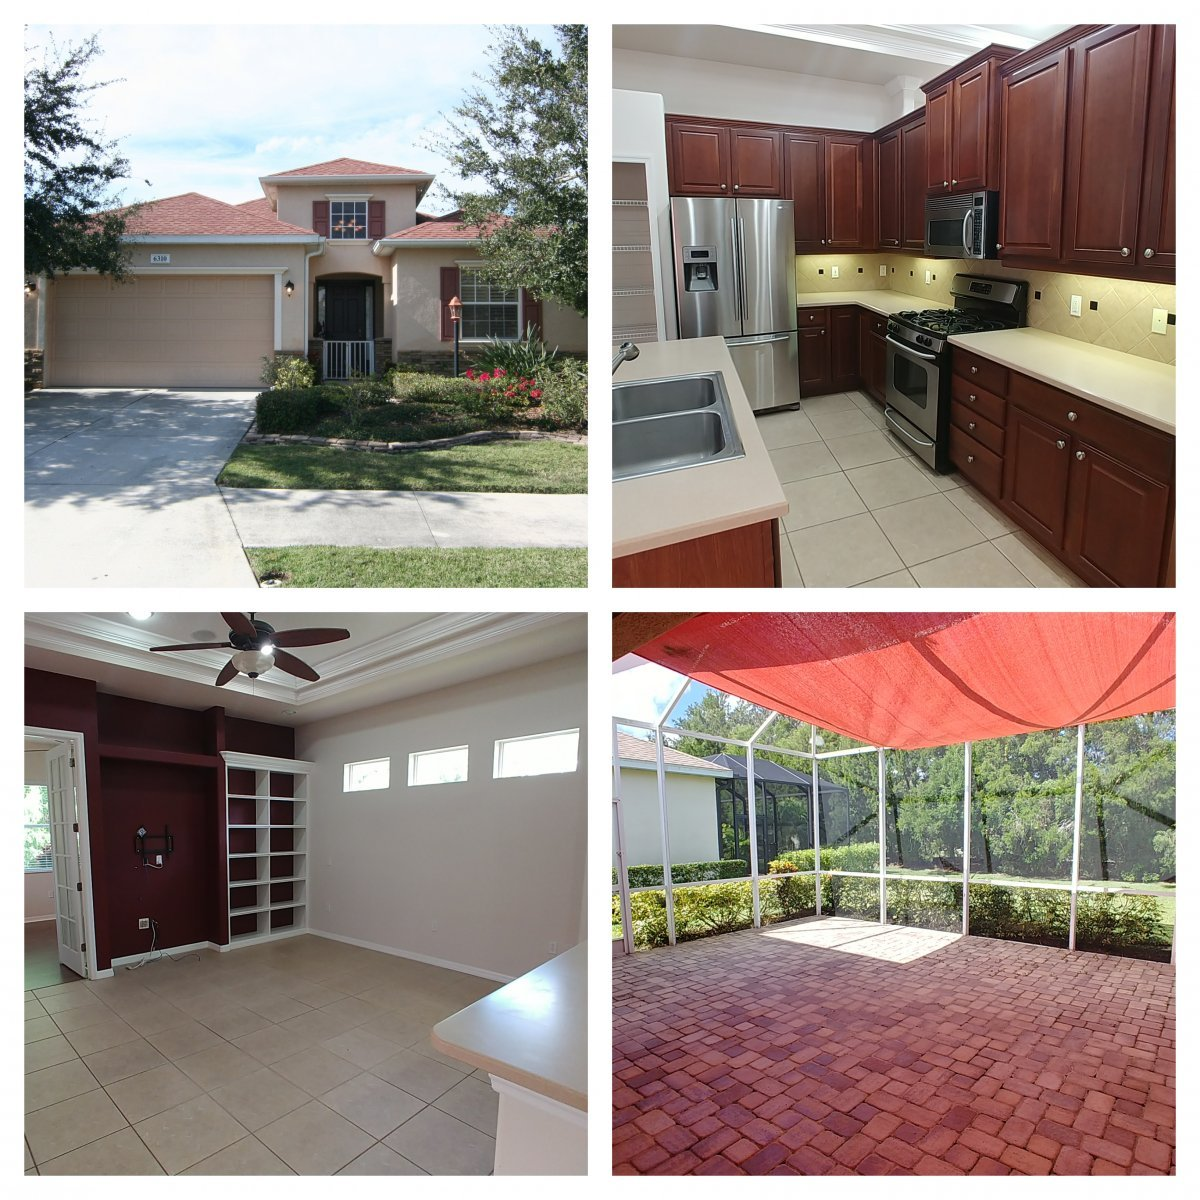 Greenbrook Single Family Home for Rent